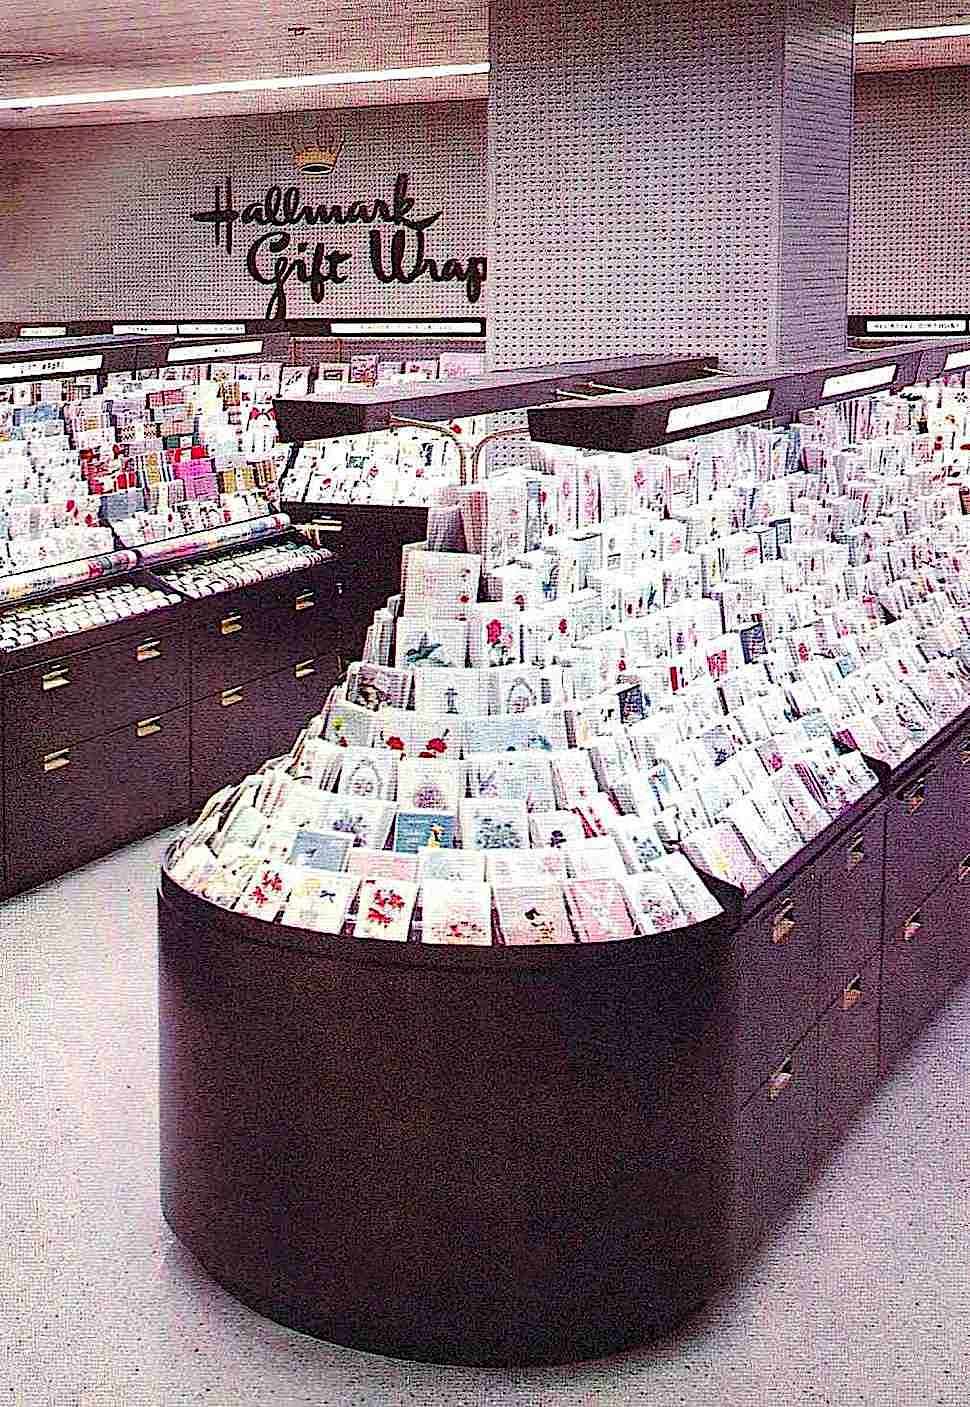 a Hallmark store 1958 showing aisle and island